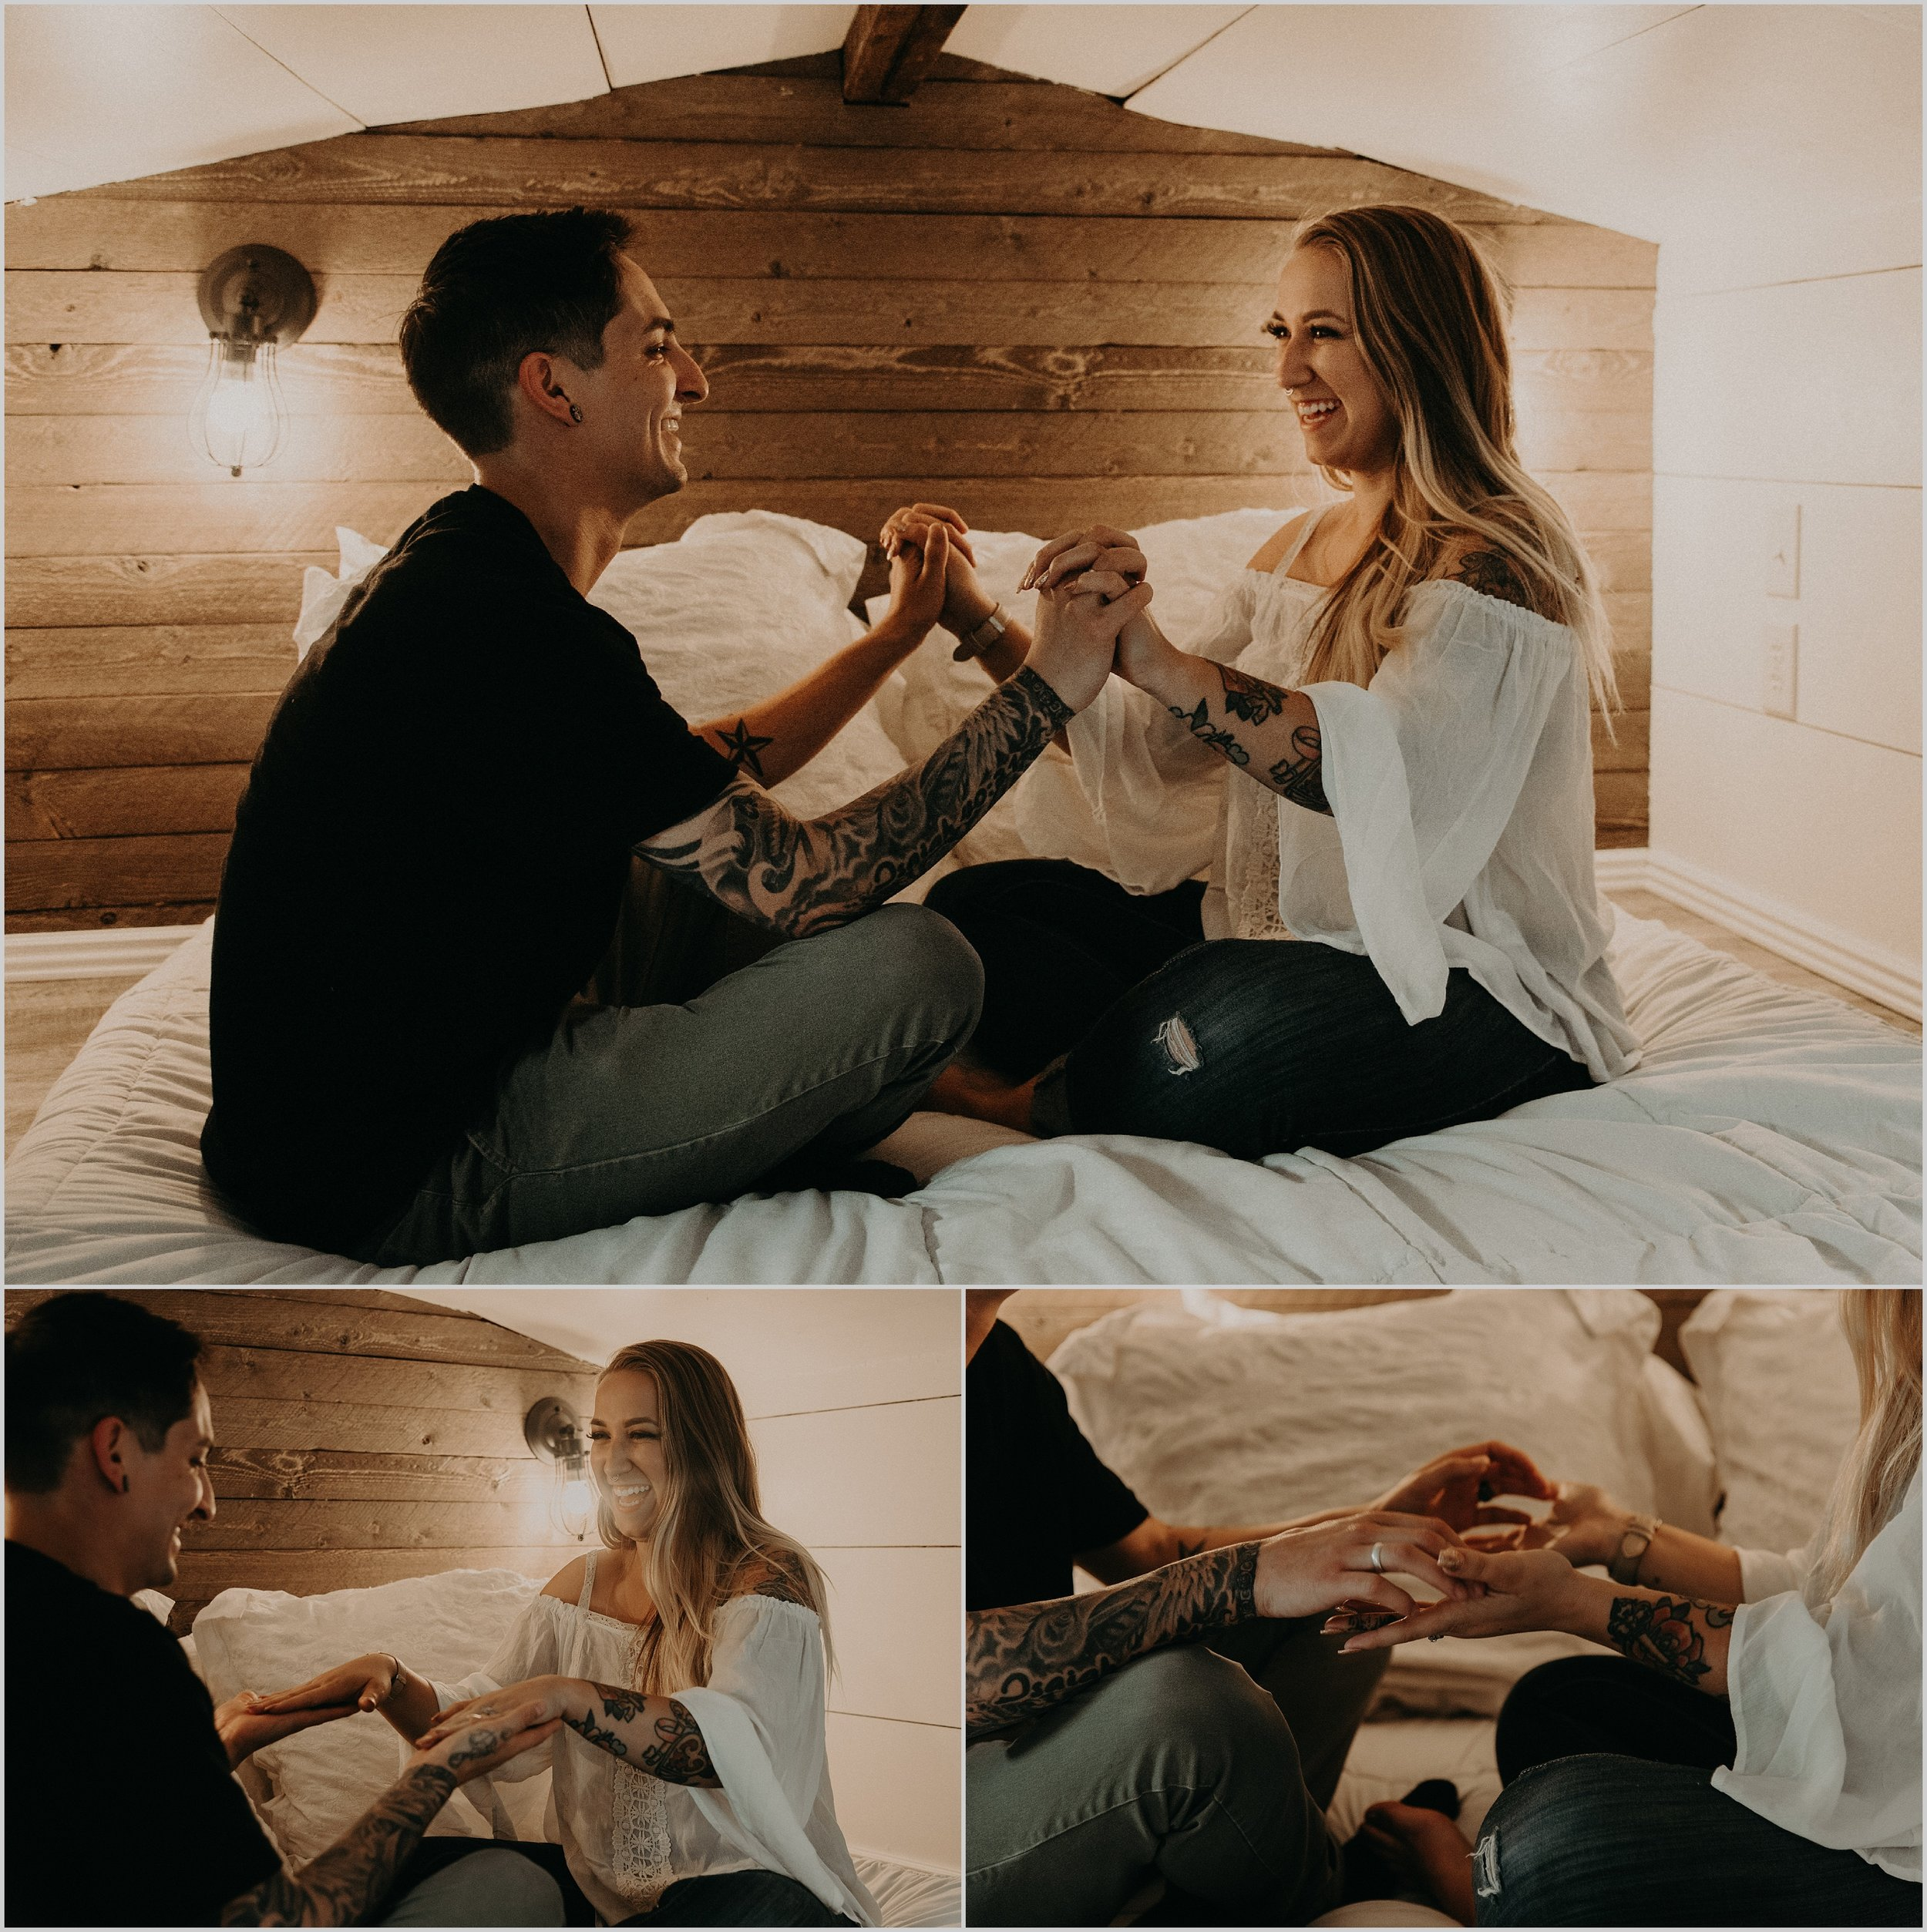 Tiny Home love story photo session playing patty cake in loft bedroom